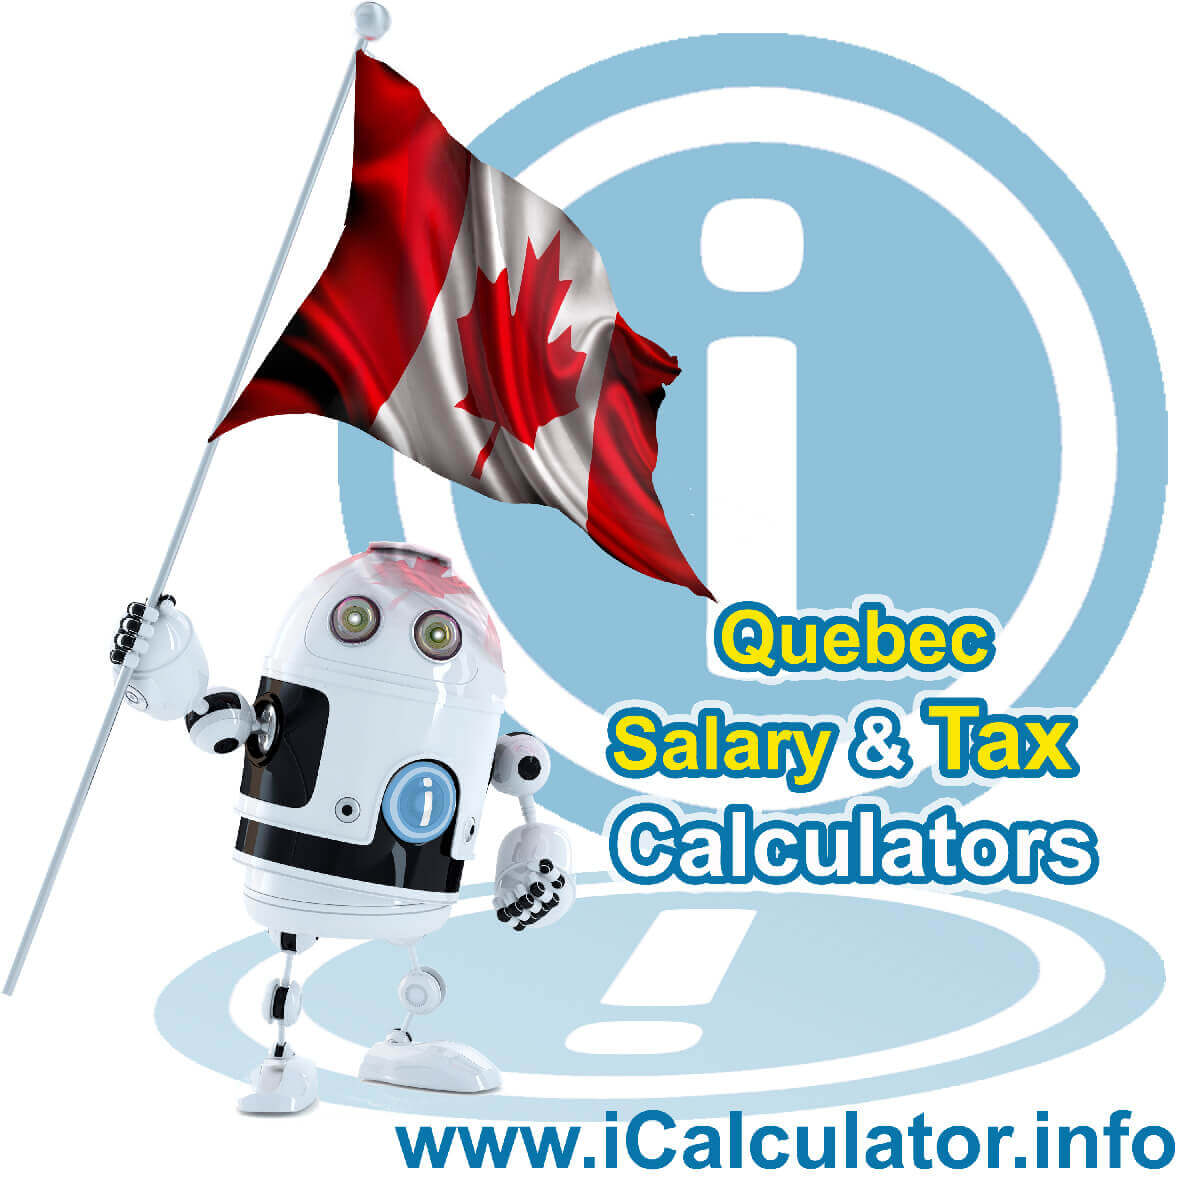 Canada Tax Calculator. This image shows the Canada flag and information relating to the tax formula for the Canada Salary Calculator